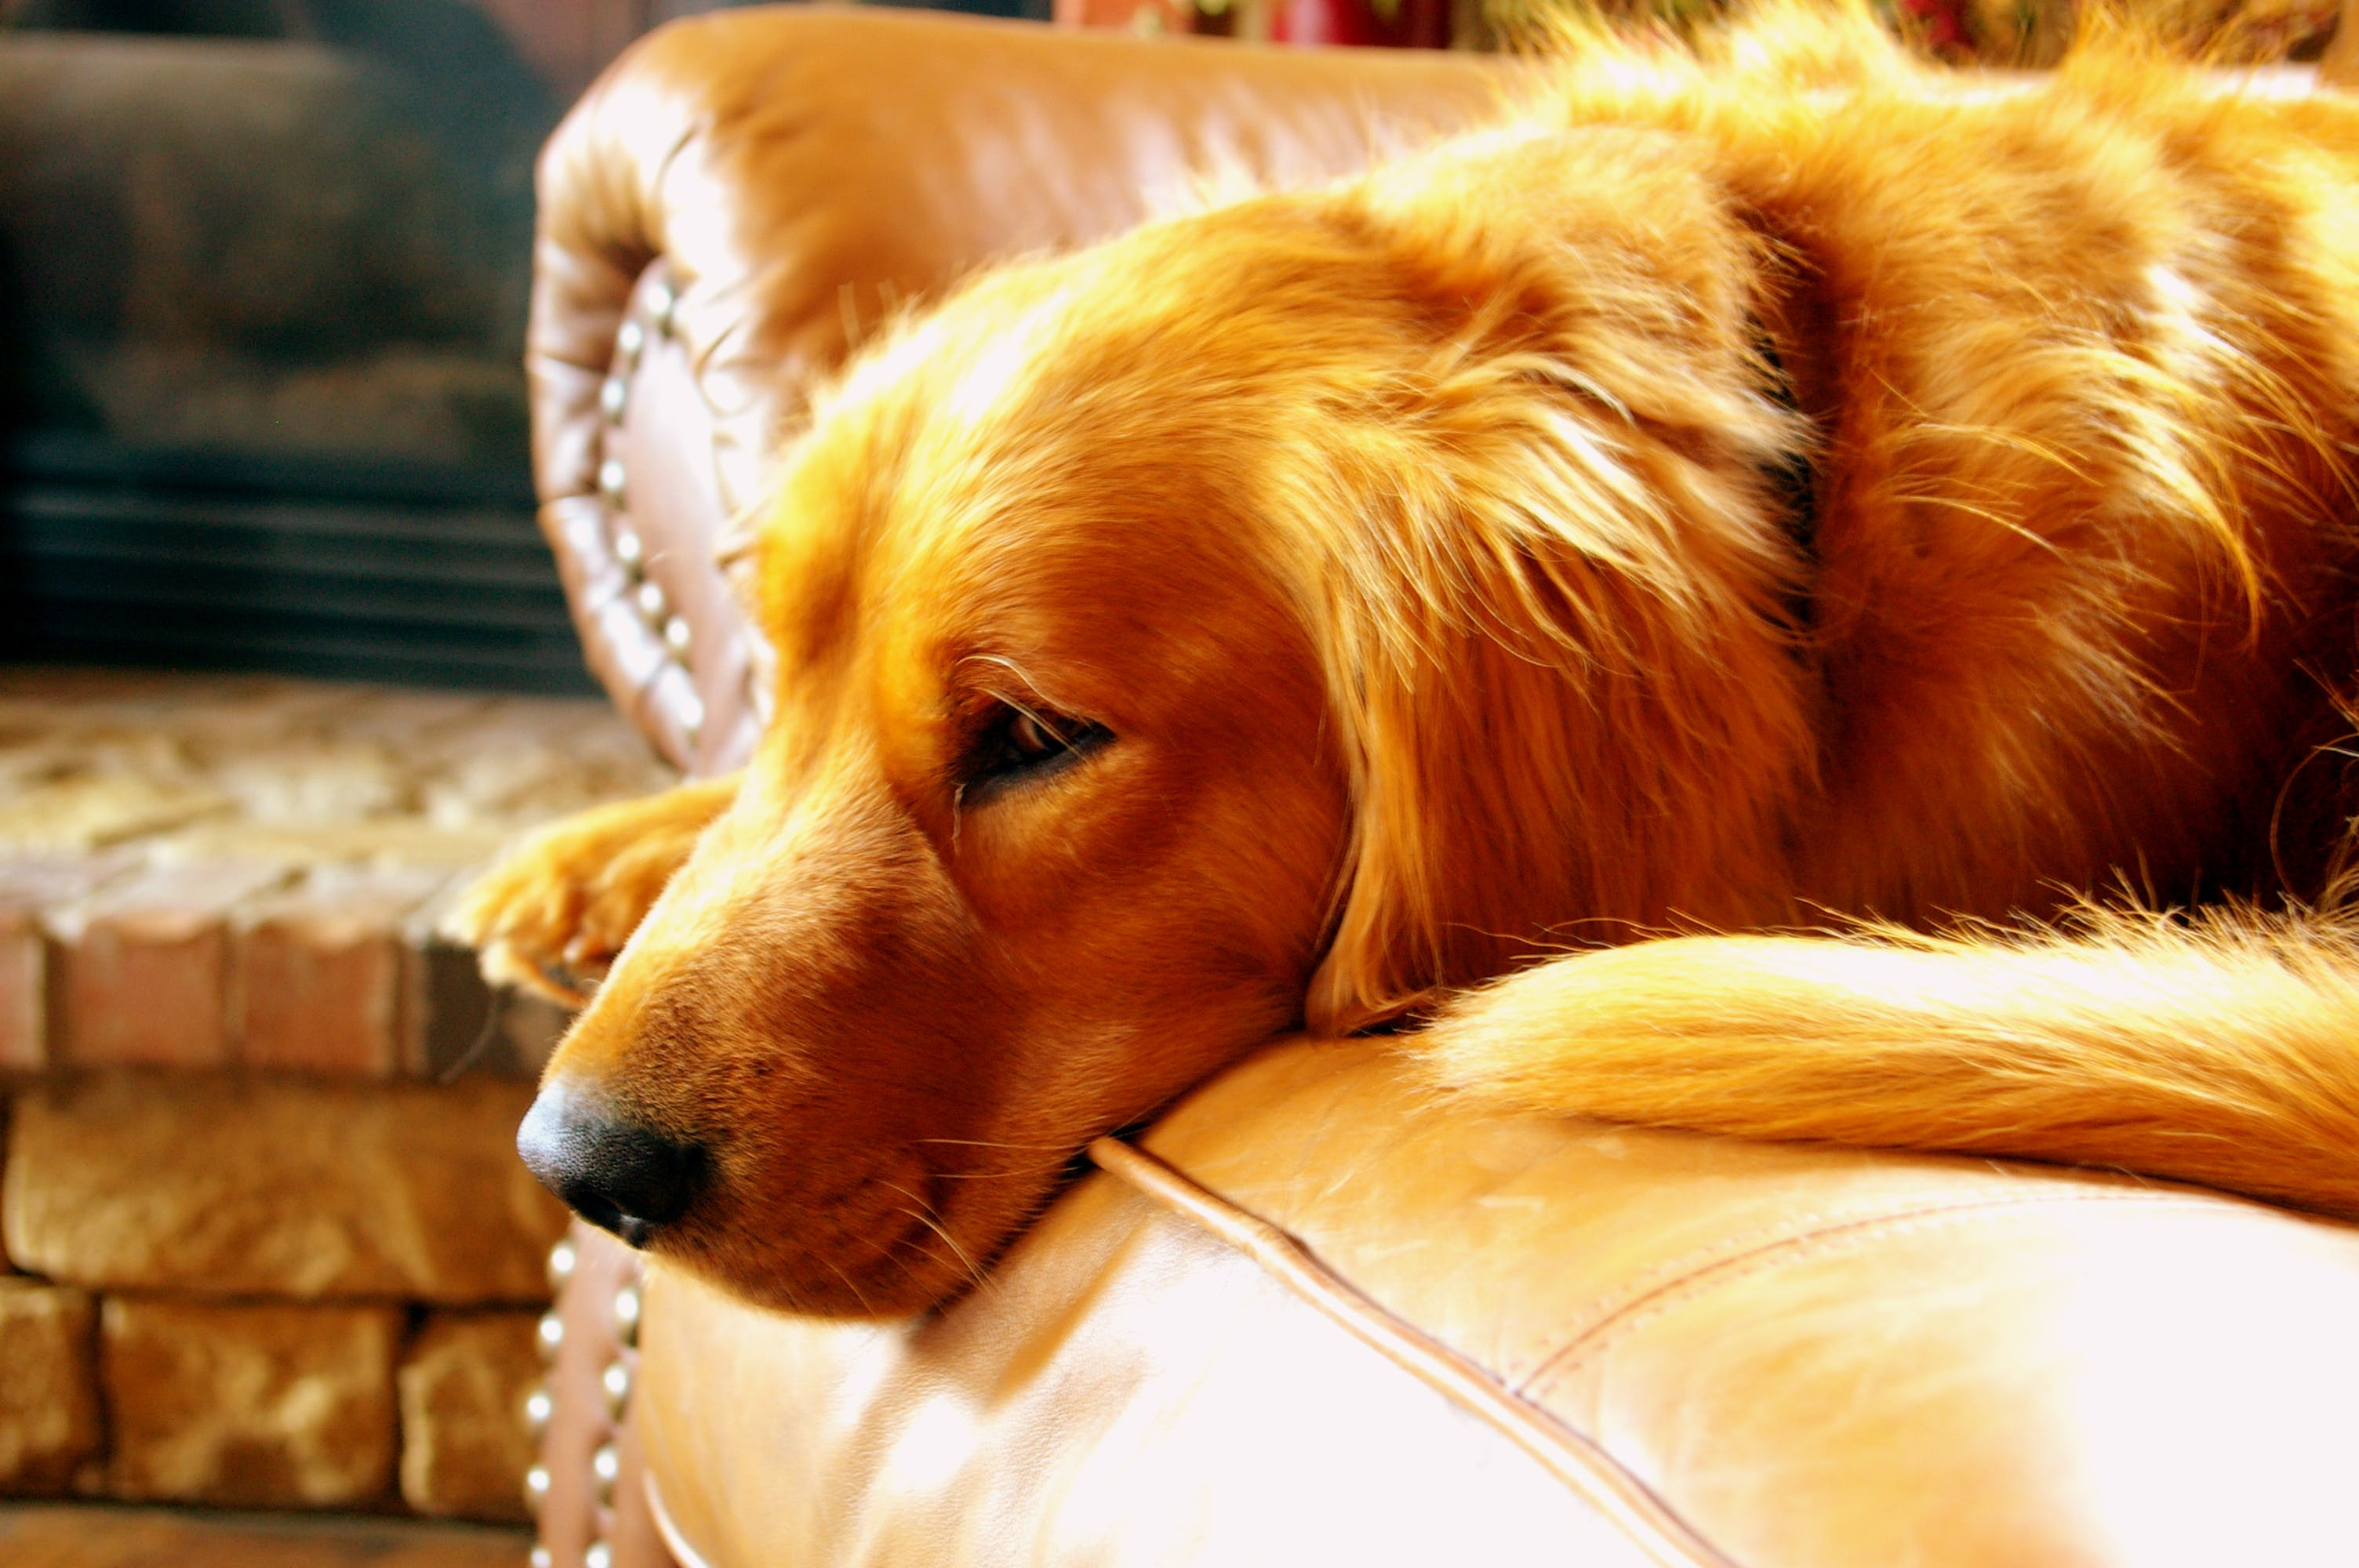 Gratis stockfoto met beest, binnen, close-up, Golden retriever